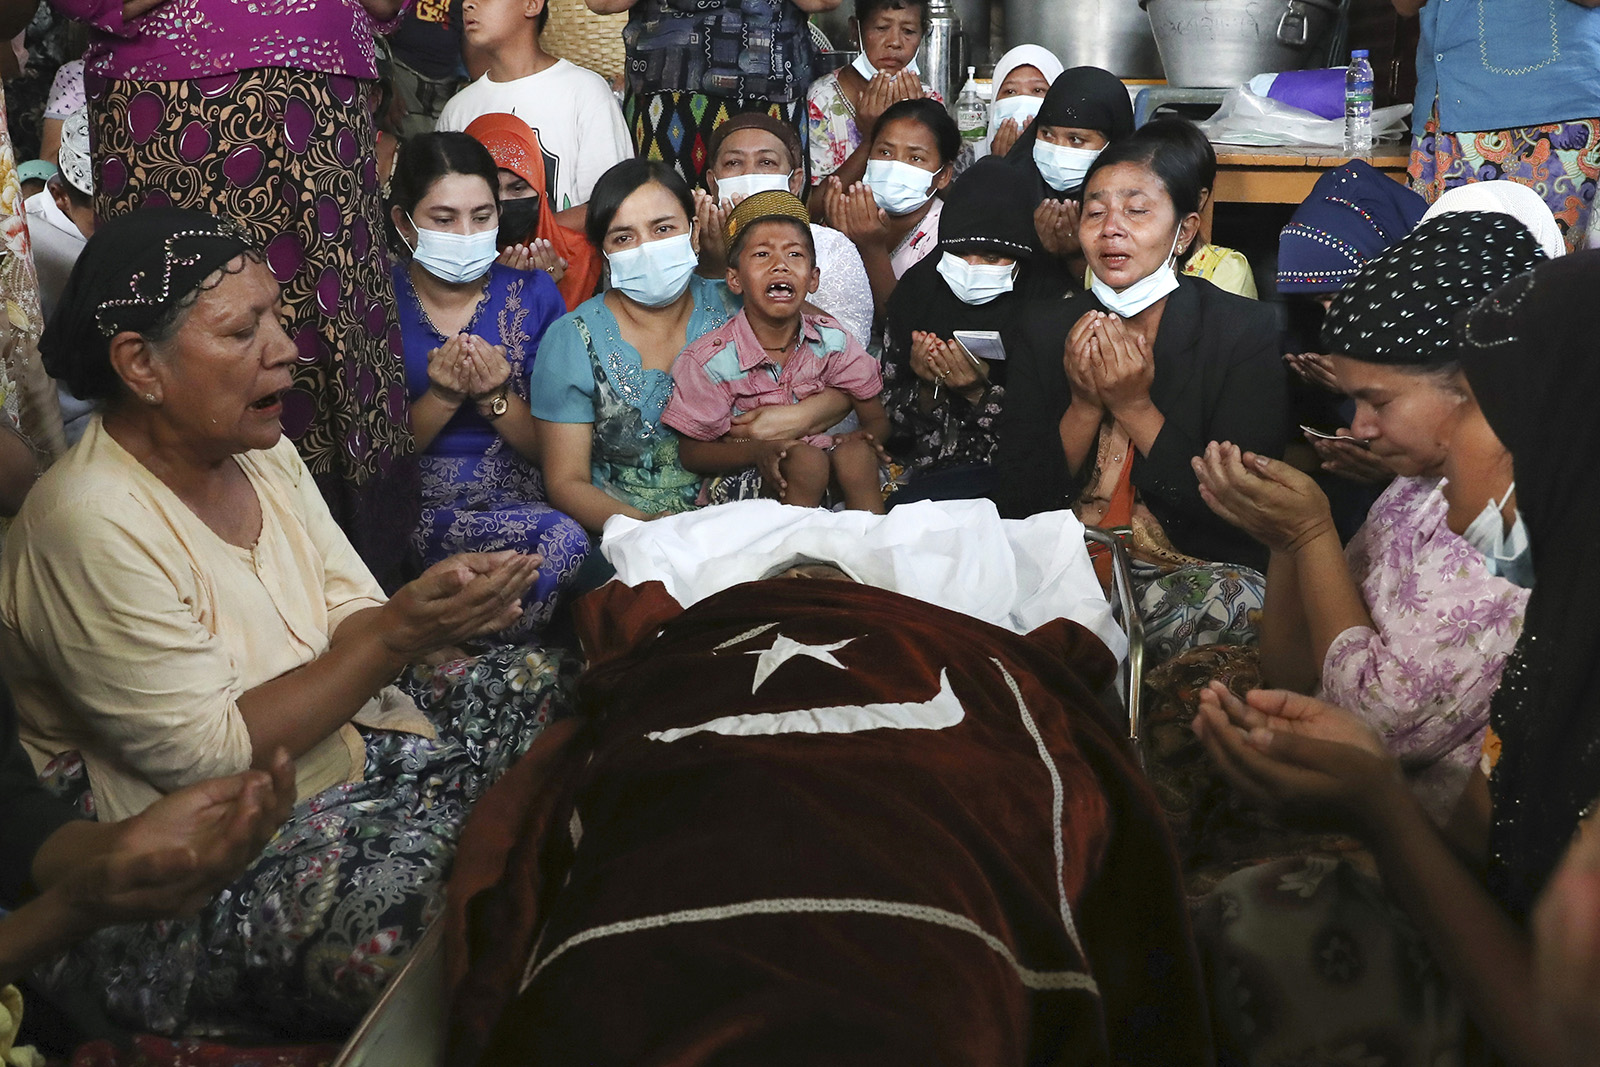 Family and relatives pray next to the body of a Muslim woman, who her family said was killed by the army Sunday, during her funeral service in Mandalay, Myanmar, Monday, March 1, 2021. Defiant crowds returned to the streets of Myanmar's biggest city of Yangon on Monday, determined to continue their protests against the military's seizure of power a month ago, despite security forces having killed at least 18 people around the country just a day earlier. (AP Photo)